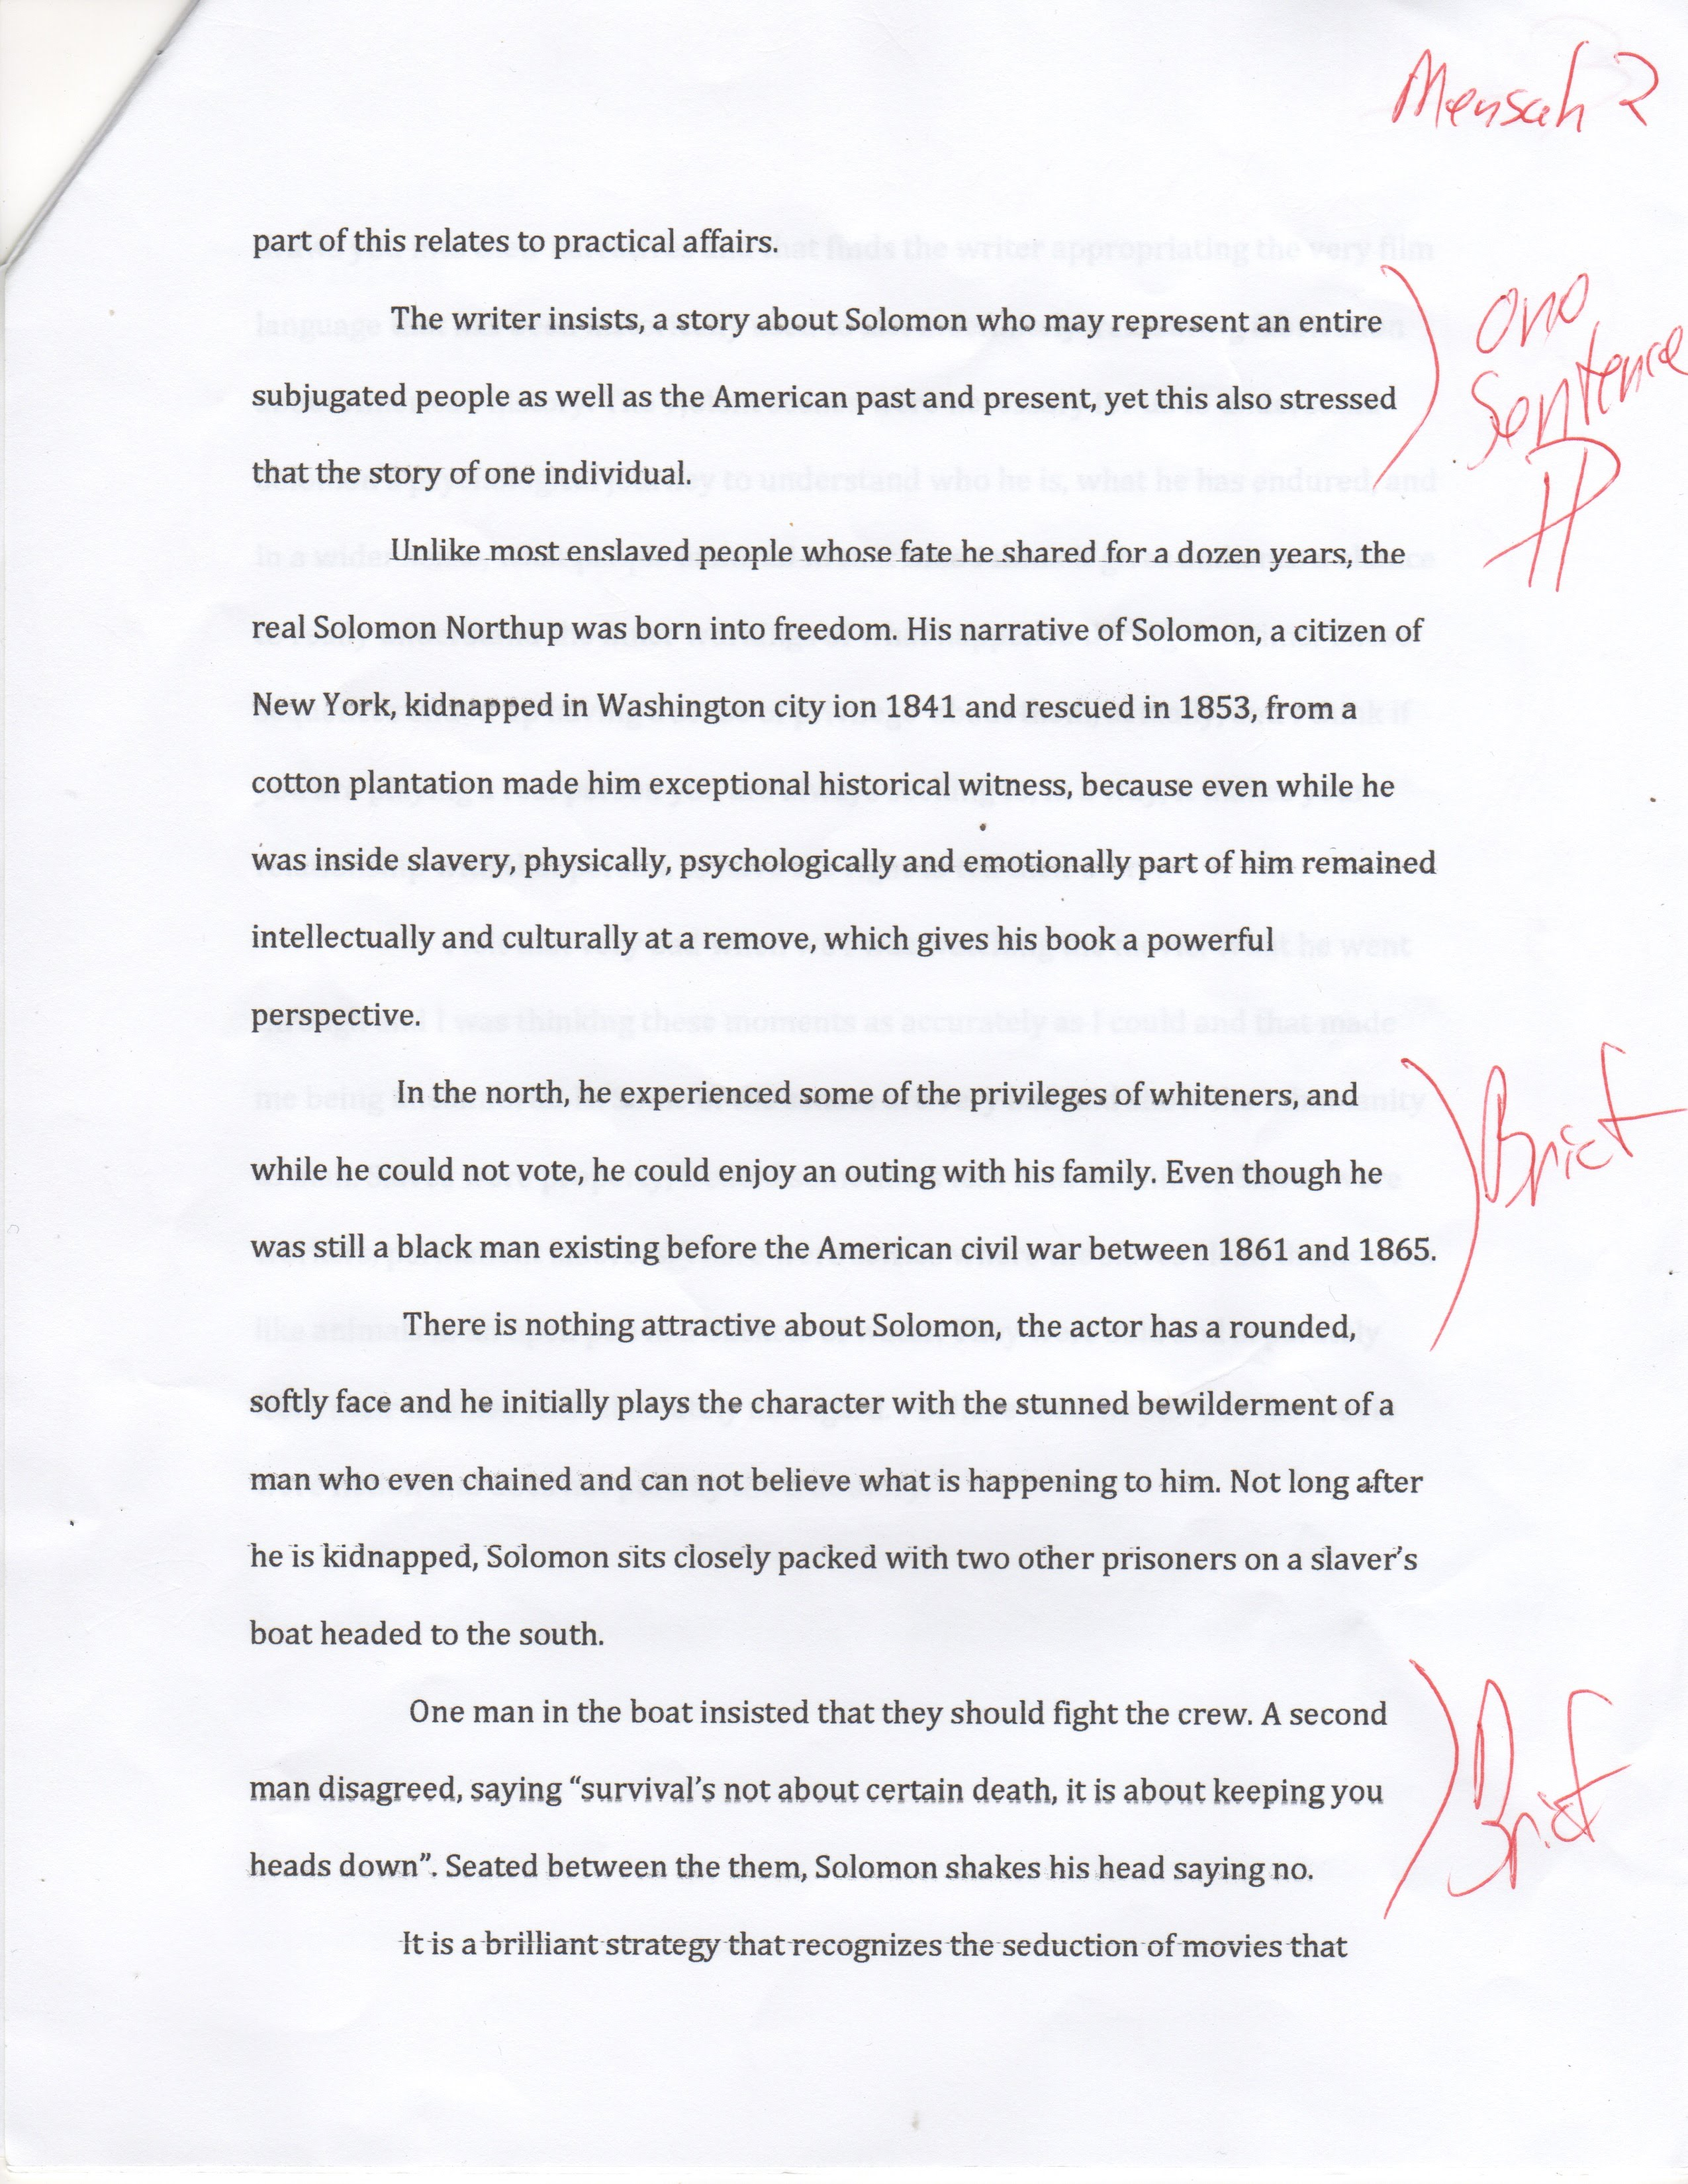 essay paper legalizing euthanasia essay paper essay on psychology research paper college essaysaugurio abeto essays on the great